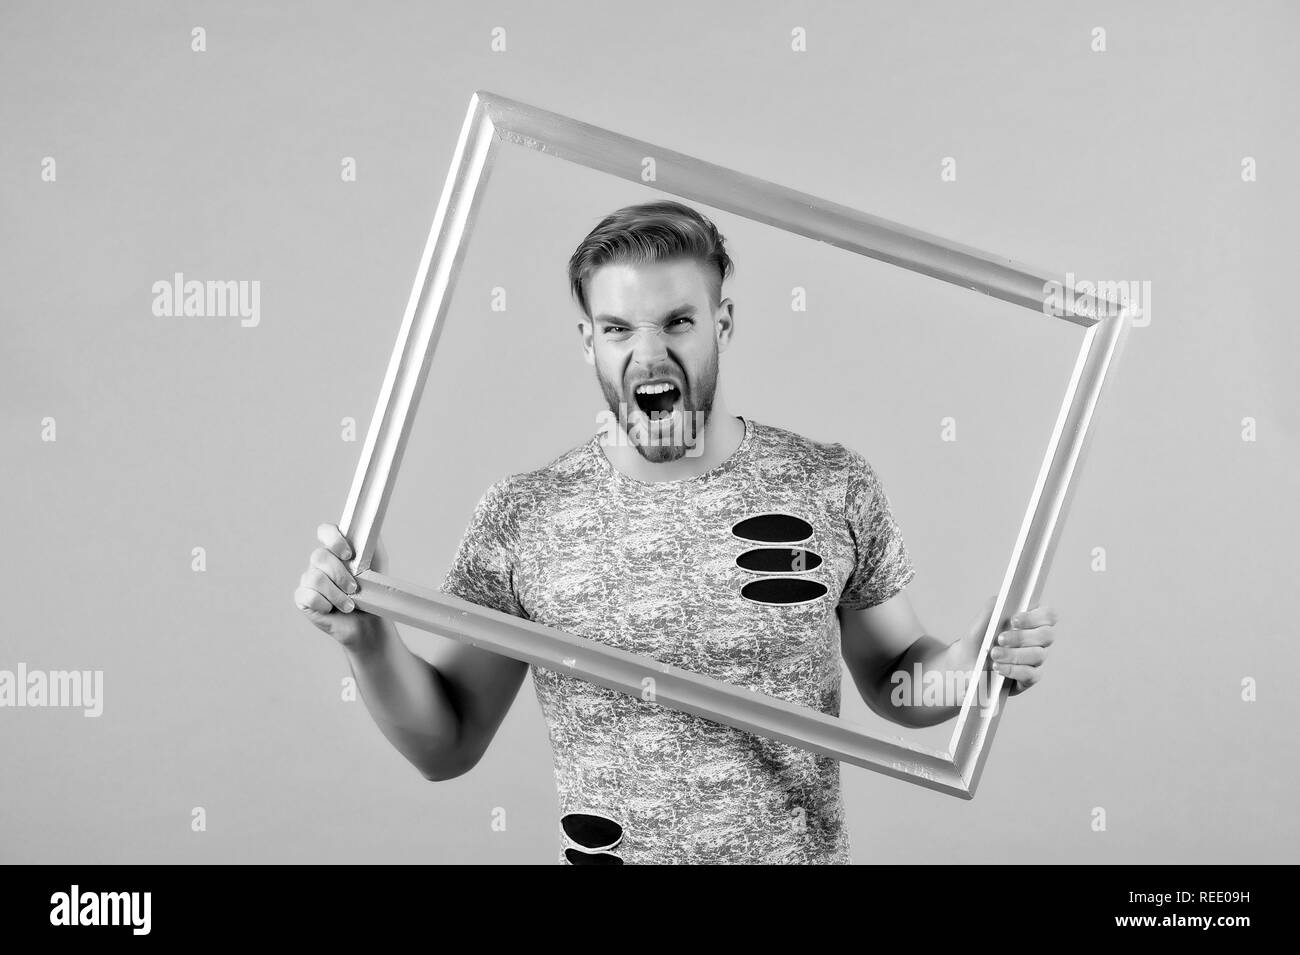 Man shout with picture frame on grey background. Angry macho with beard hold wooden photo frame. Guy with empty framework. Creativity and wall art concept. - Stock Image